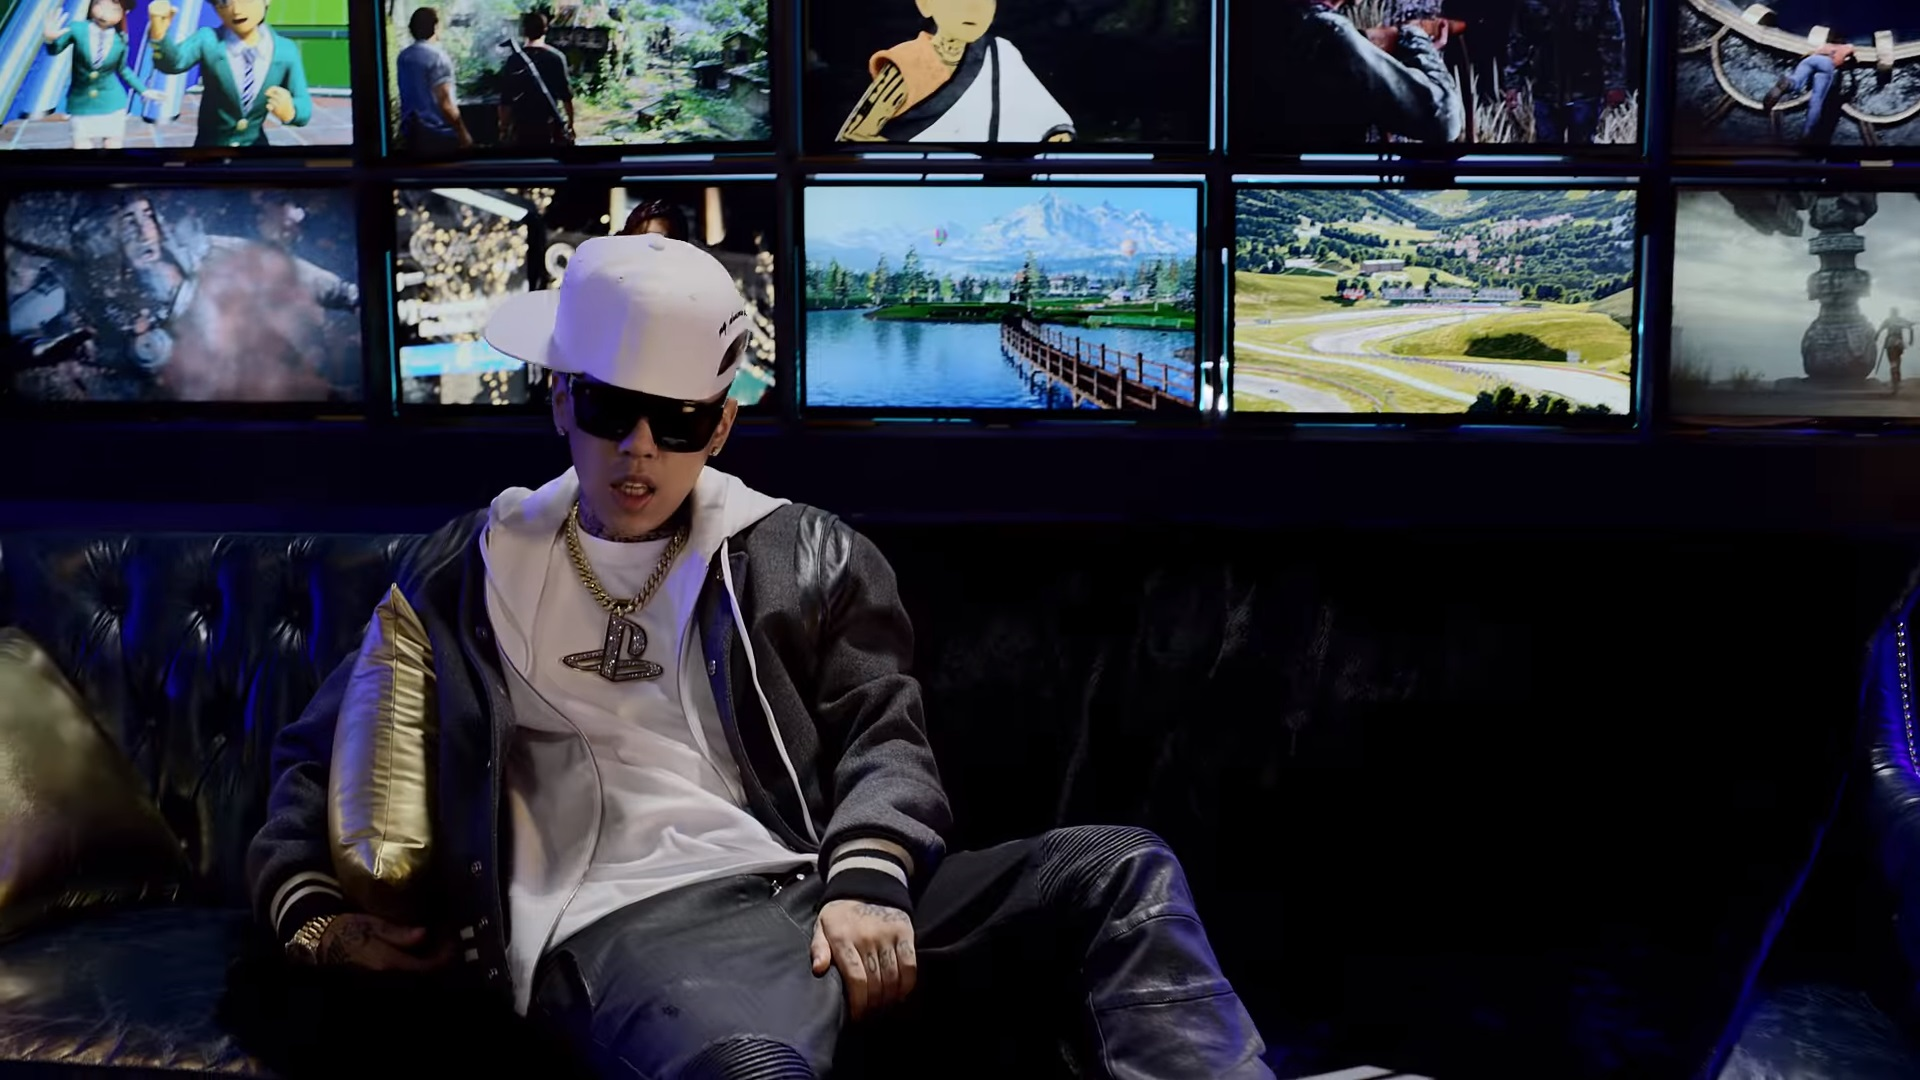 Rapper Dok2 Kolaborasi Bersama Playstation di MV 'Only On'